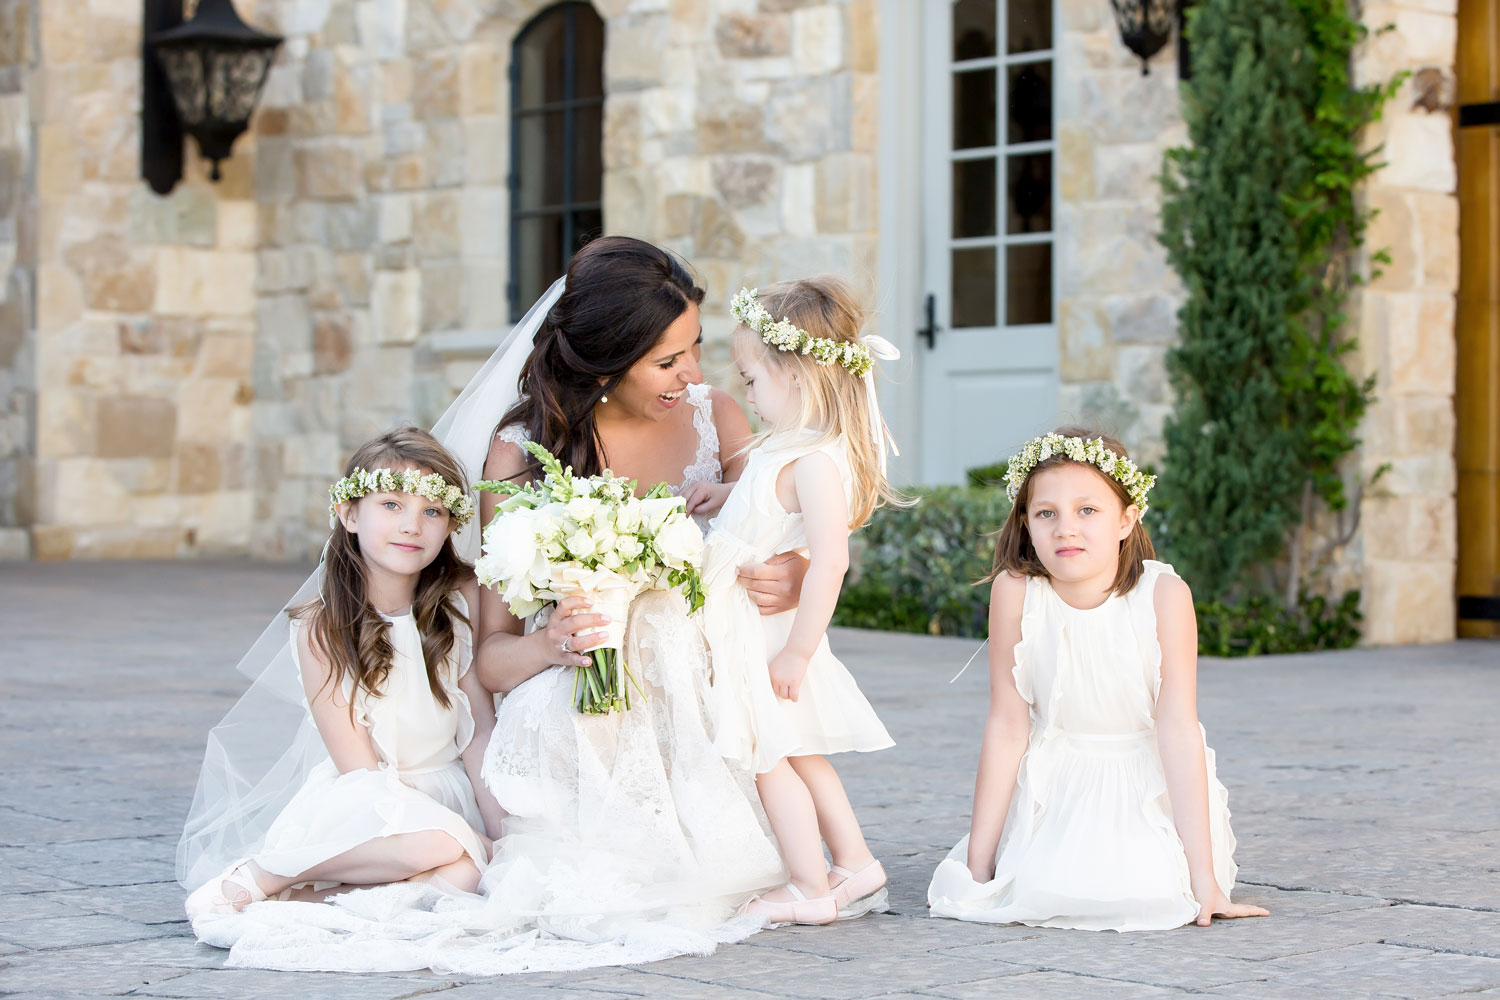 bride with flower girls in white dresses and flower crowns malibu wedding